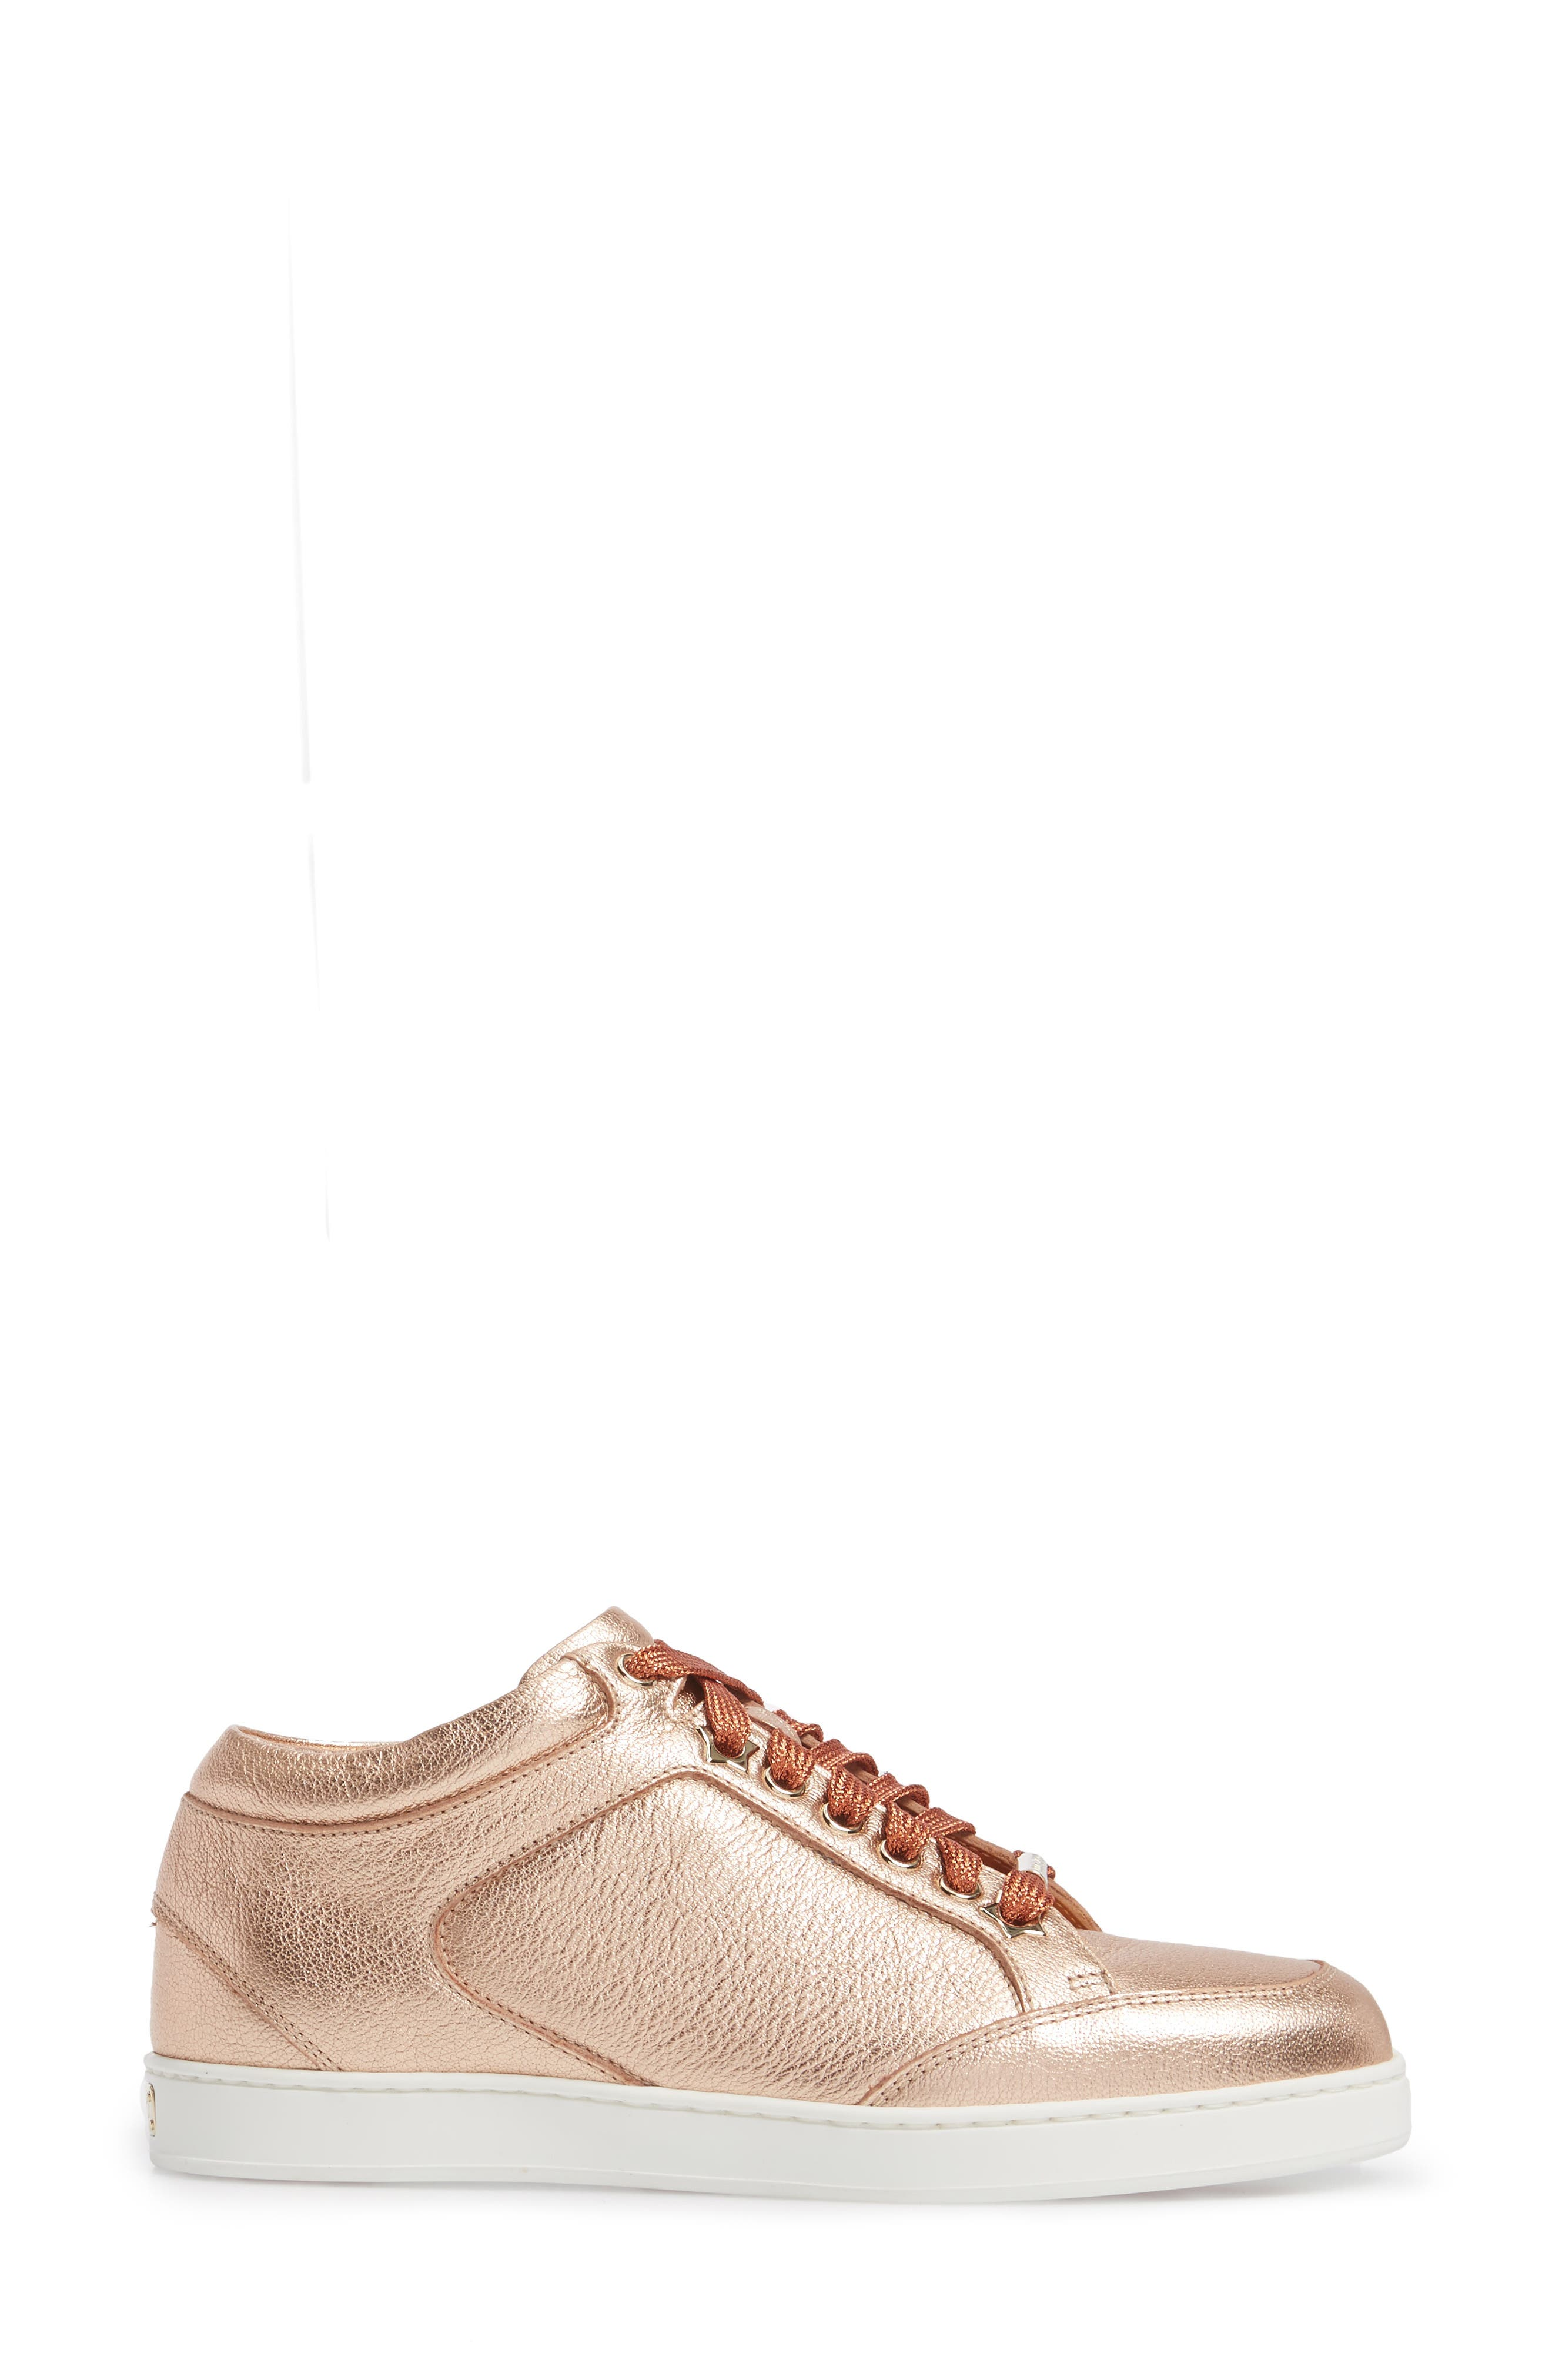 Alternate Image 3  - Jimmy Choo Miami Metallic Sneaker (Women)